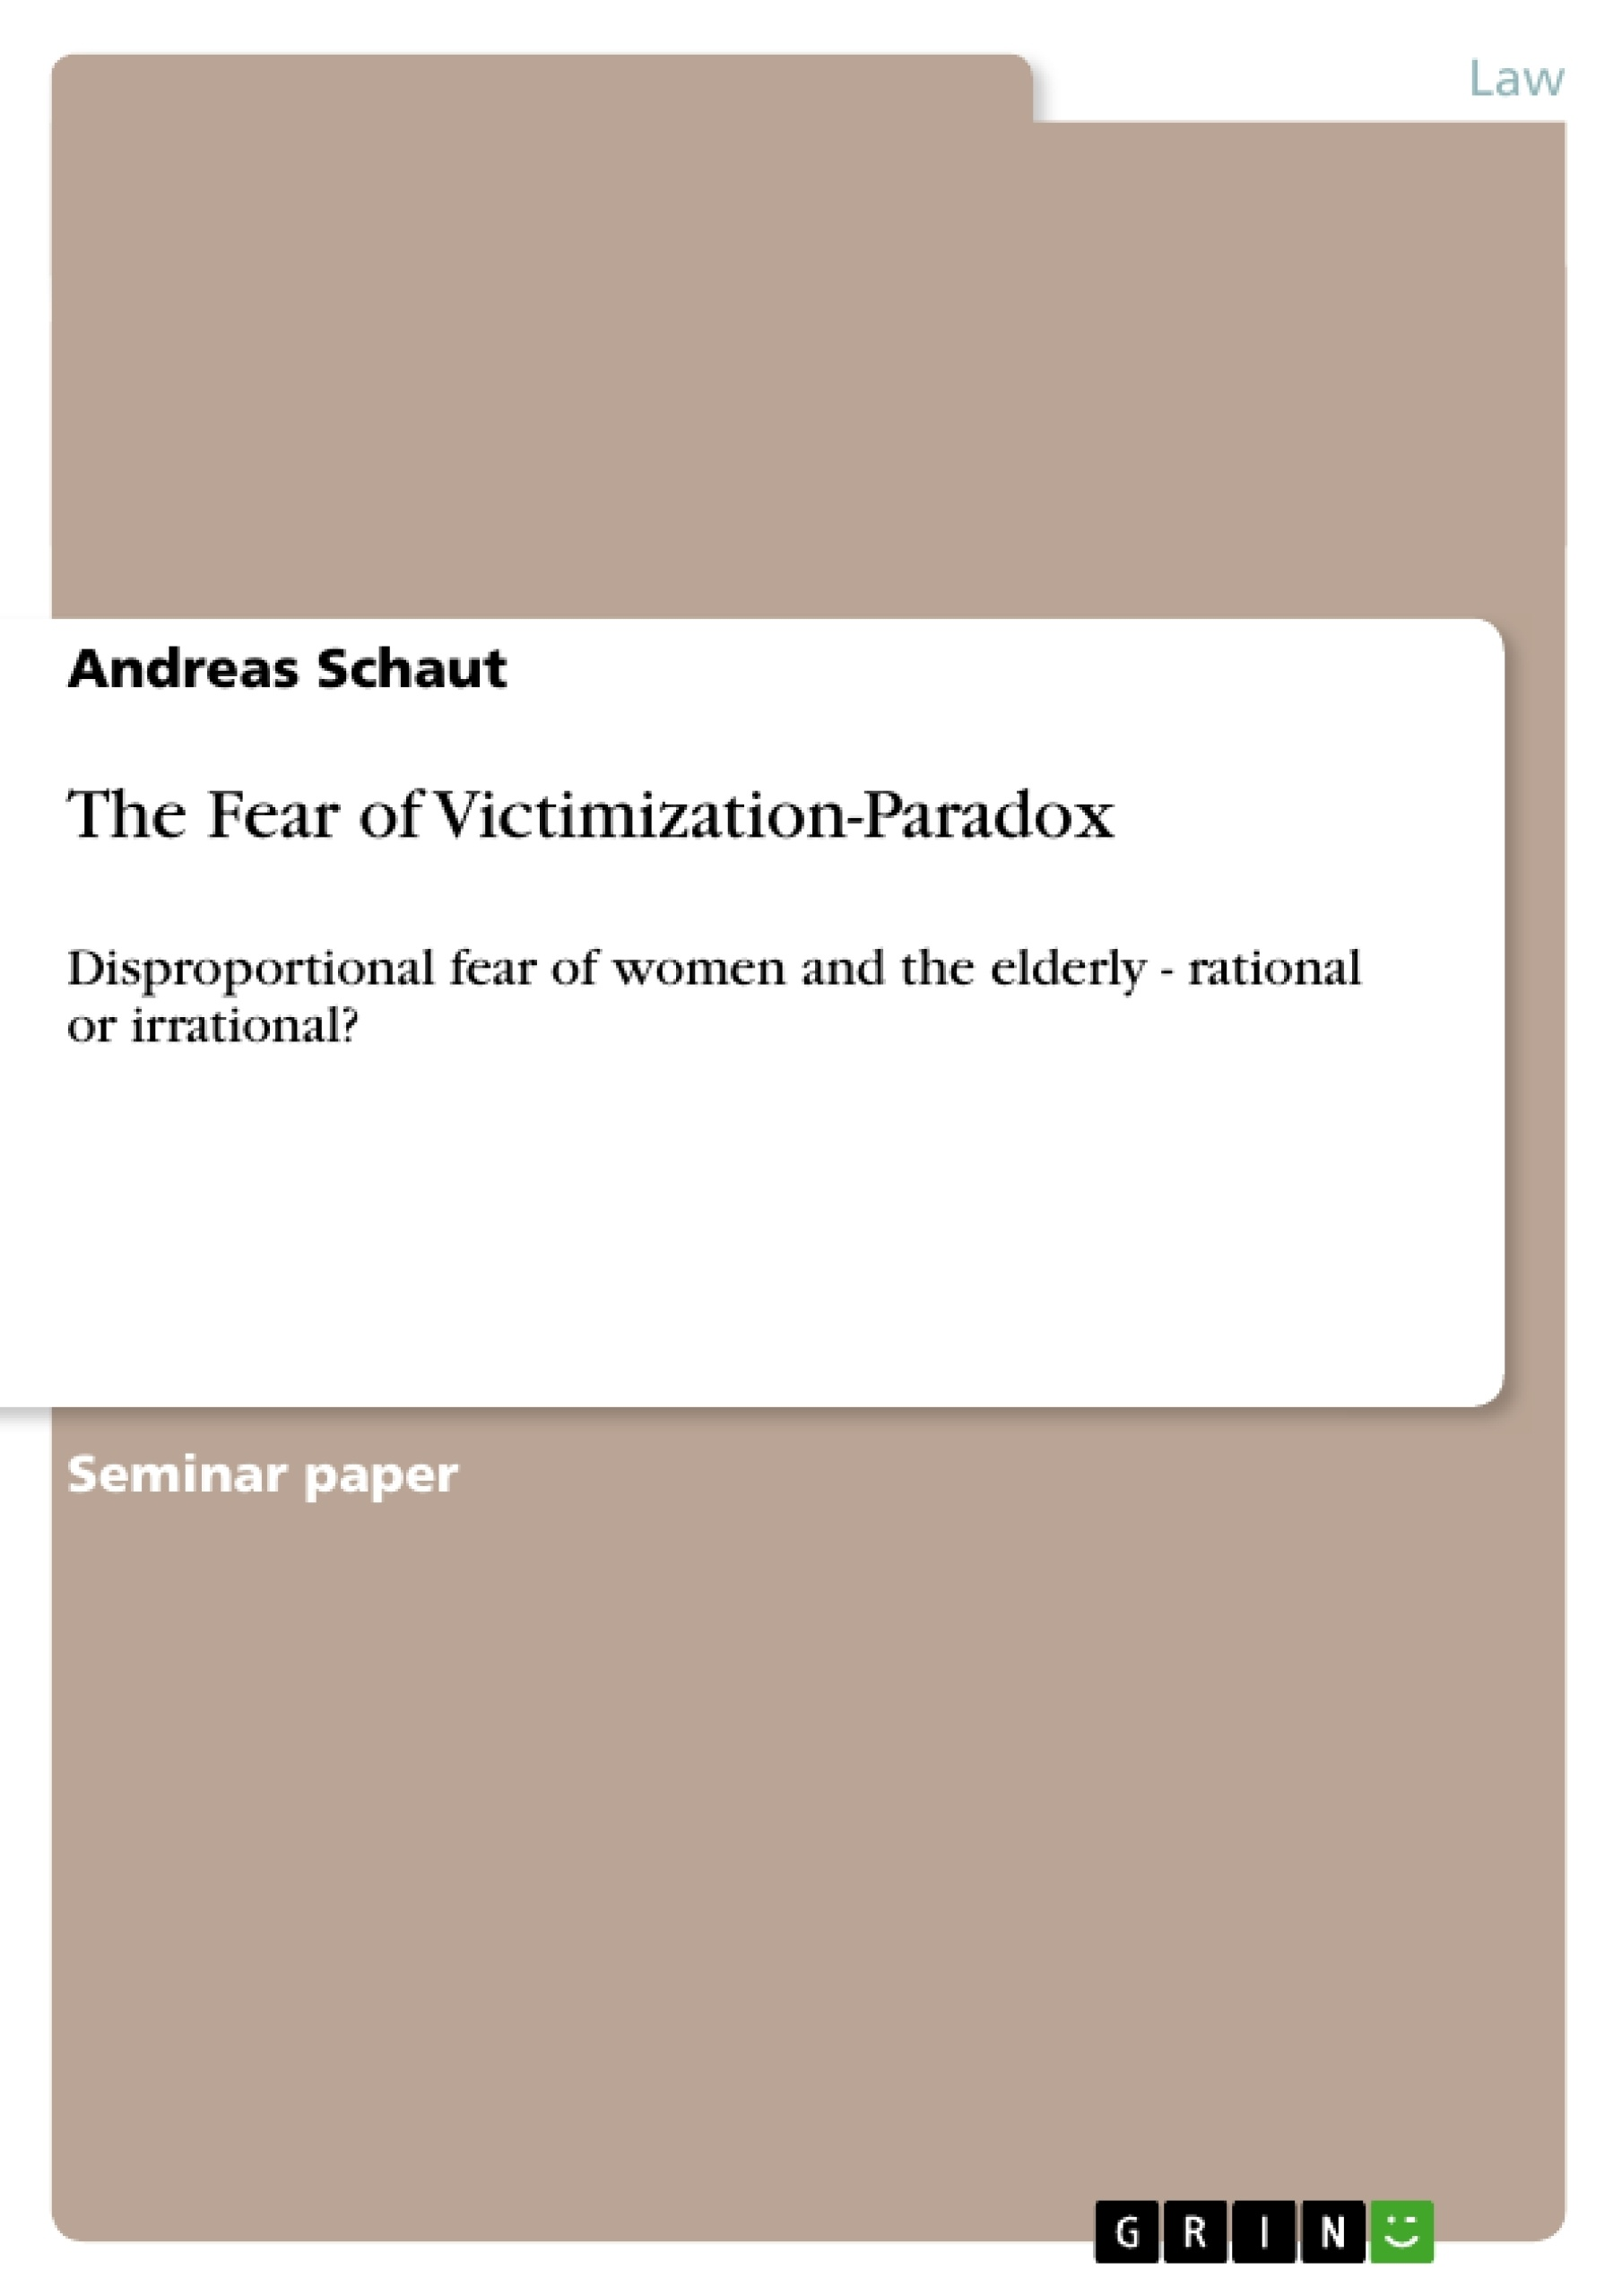 Title: The Fear of Victimization-Paradox